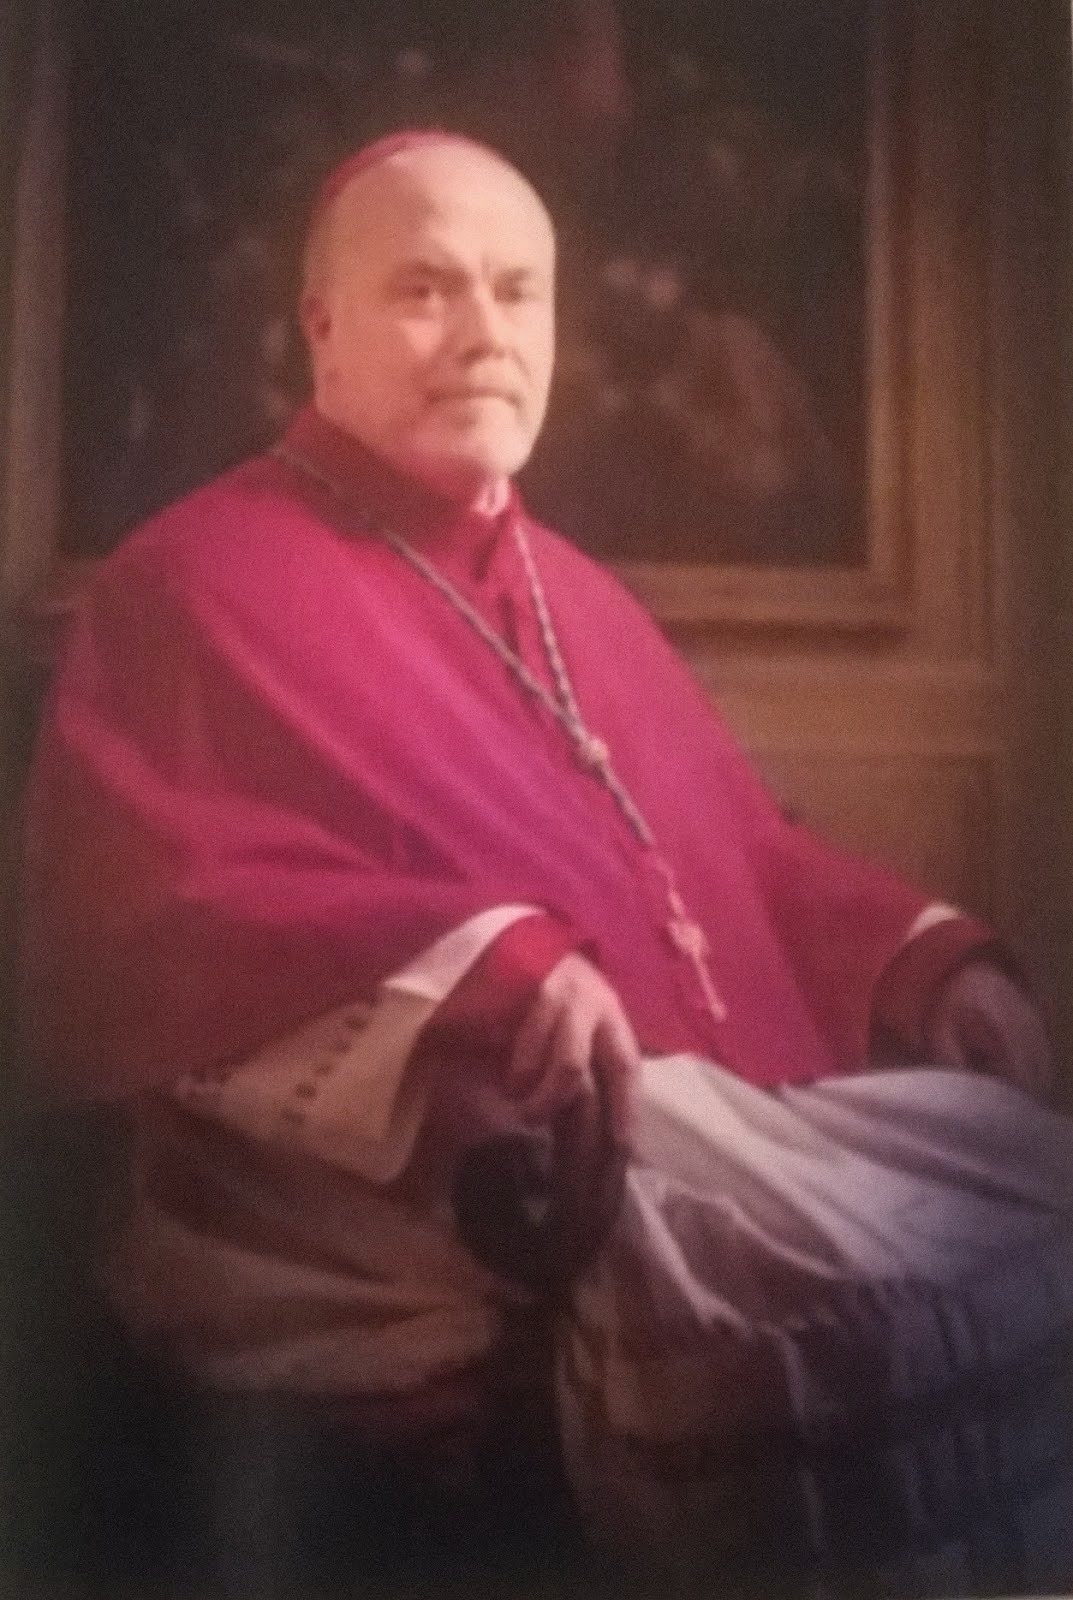 The Bishop of Leeds